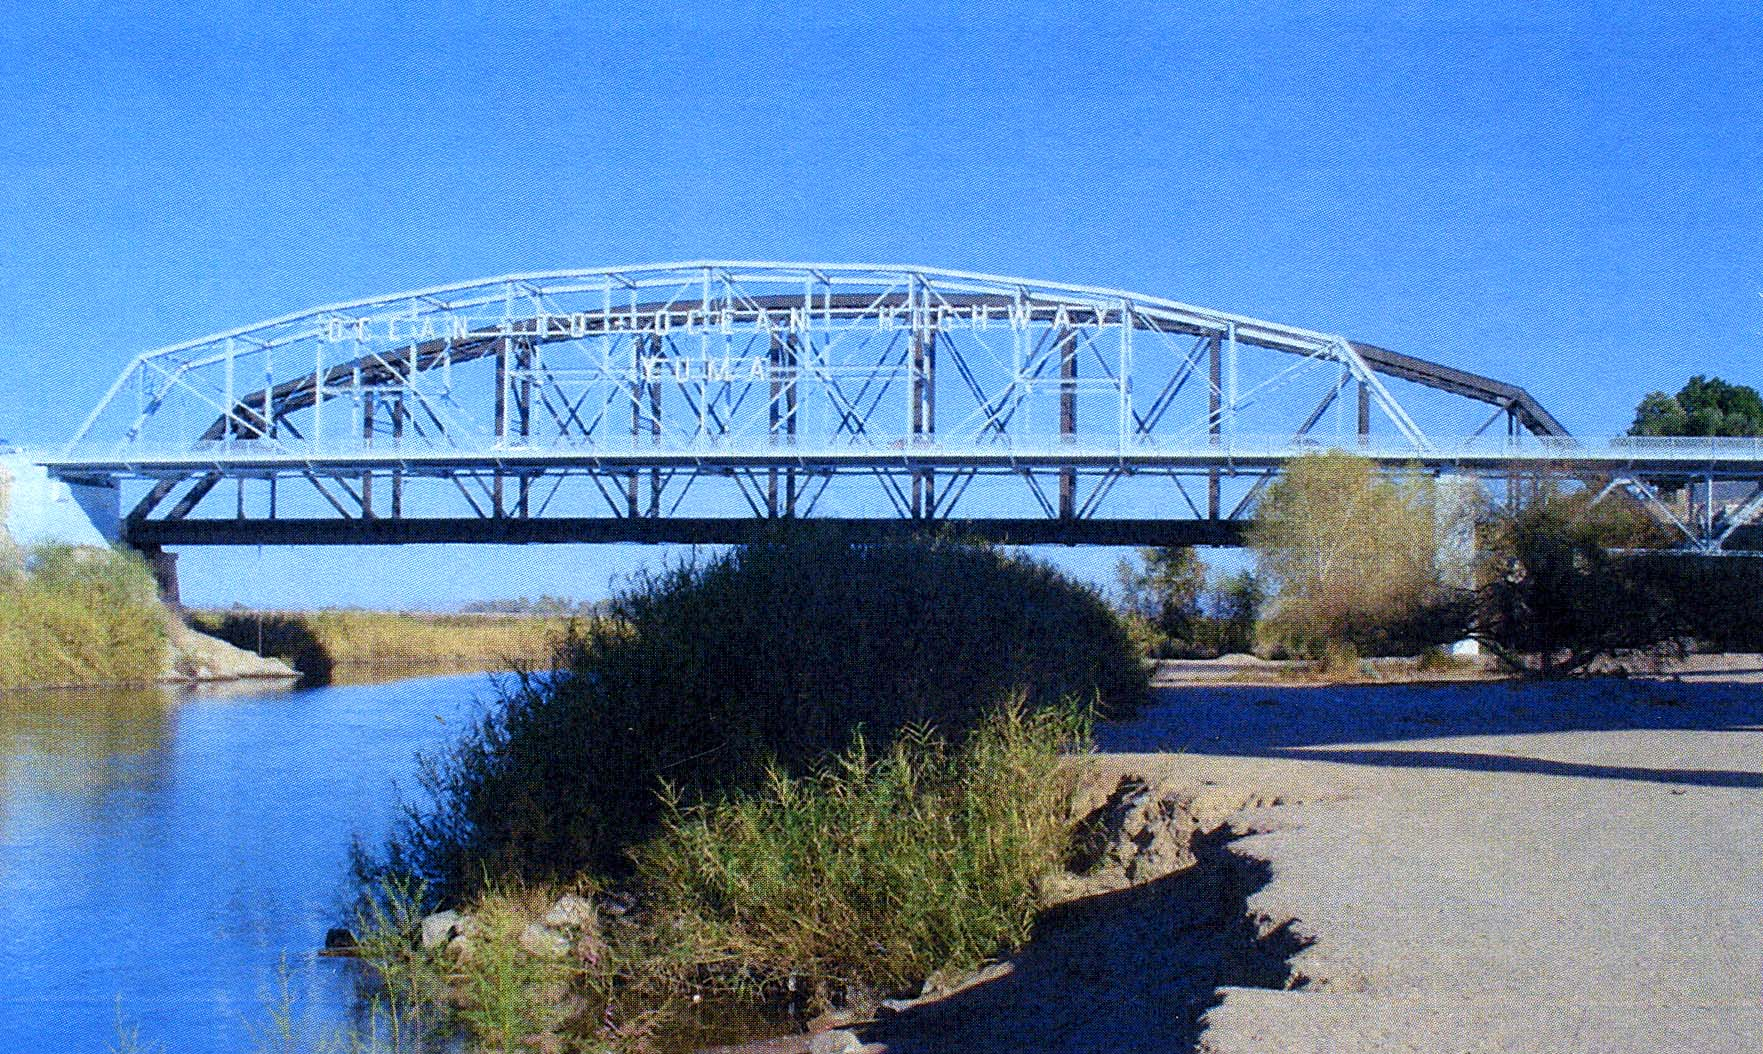 The fully restored Ocean-to-Ocean Bridge, built in 1915 and reopened in 2000, links the City of Yuma and the Quechan Indian Nation.